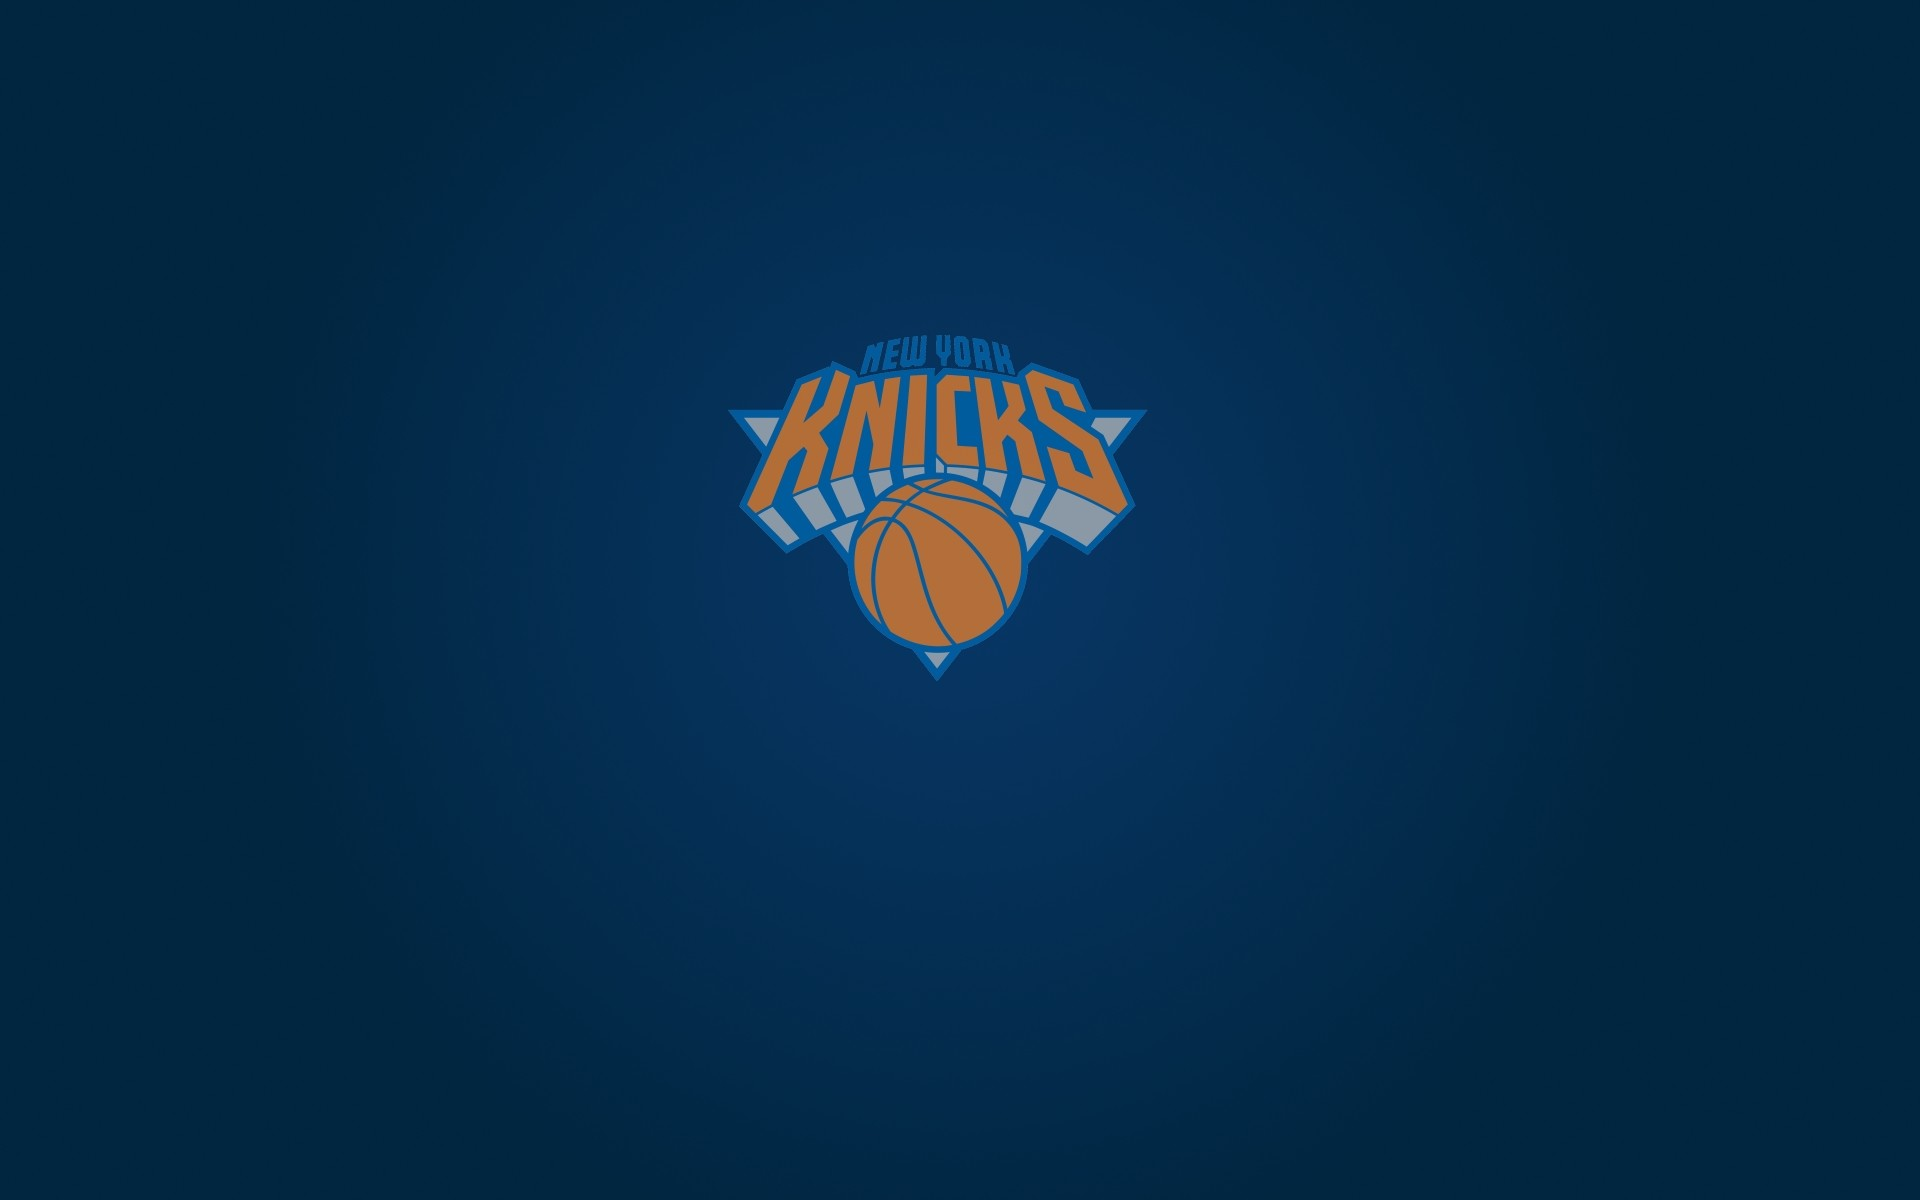 Knicks Wallpaper 71 images